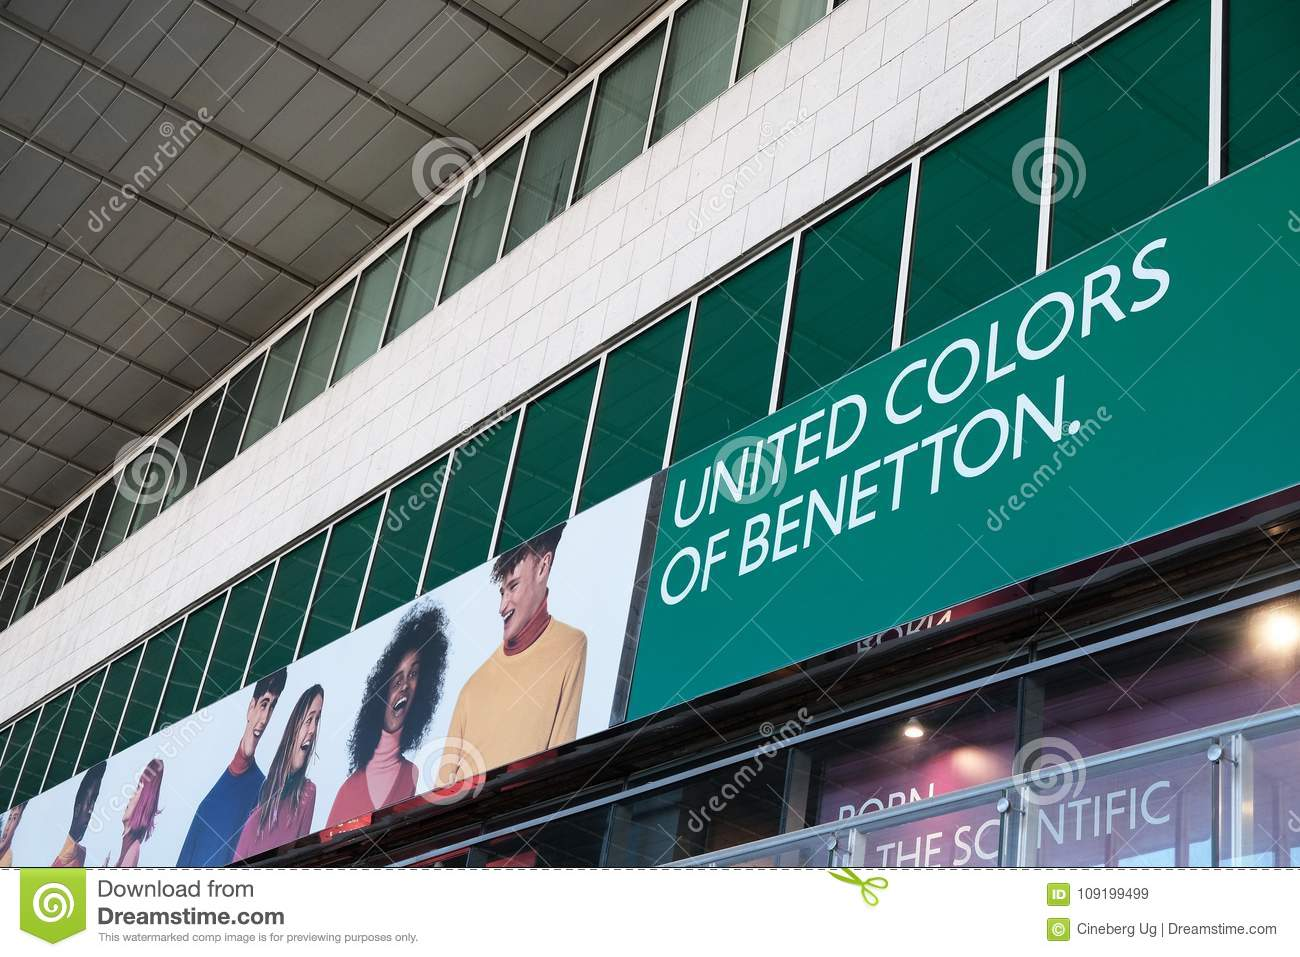 Madurar Leyes y regulaciones aumento  United Colors Of Benetton Shop Editorial Stock Image - Image of glamorous,  consumerism: 109199499